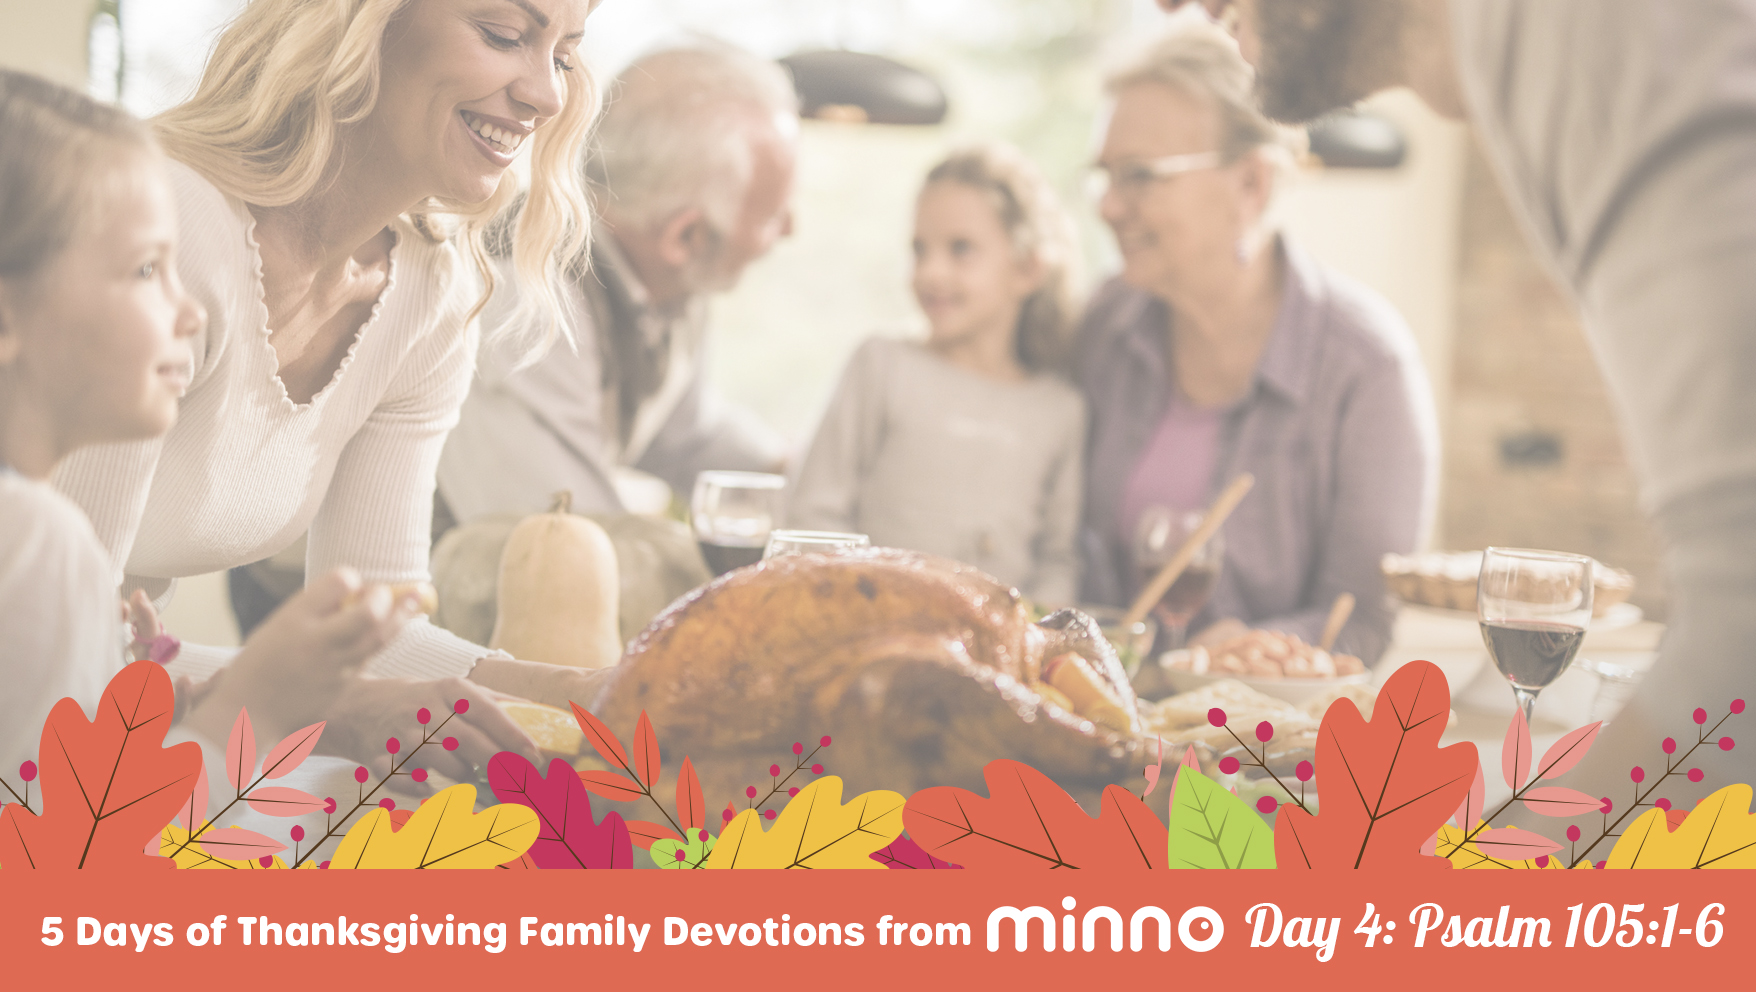 Thanksgiving Family Devotions - Day 4